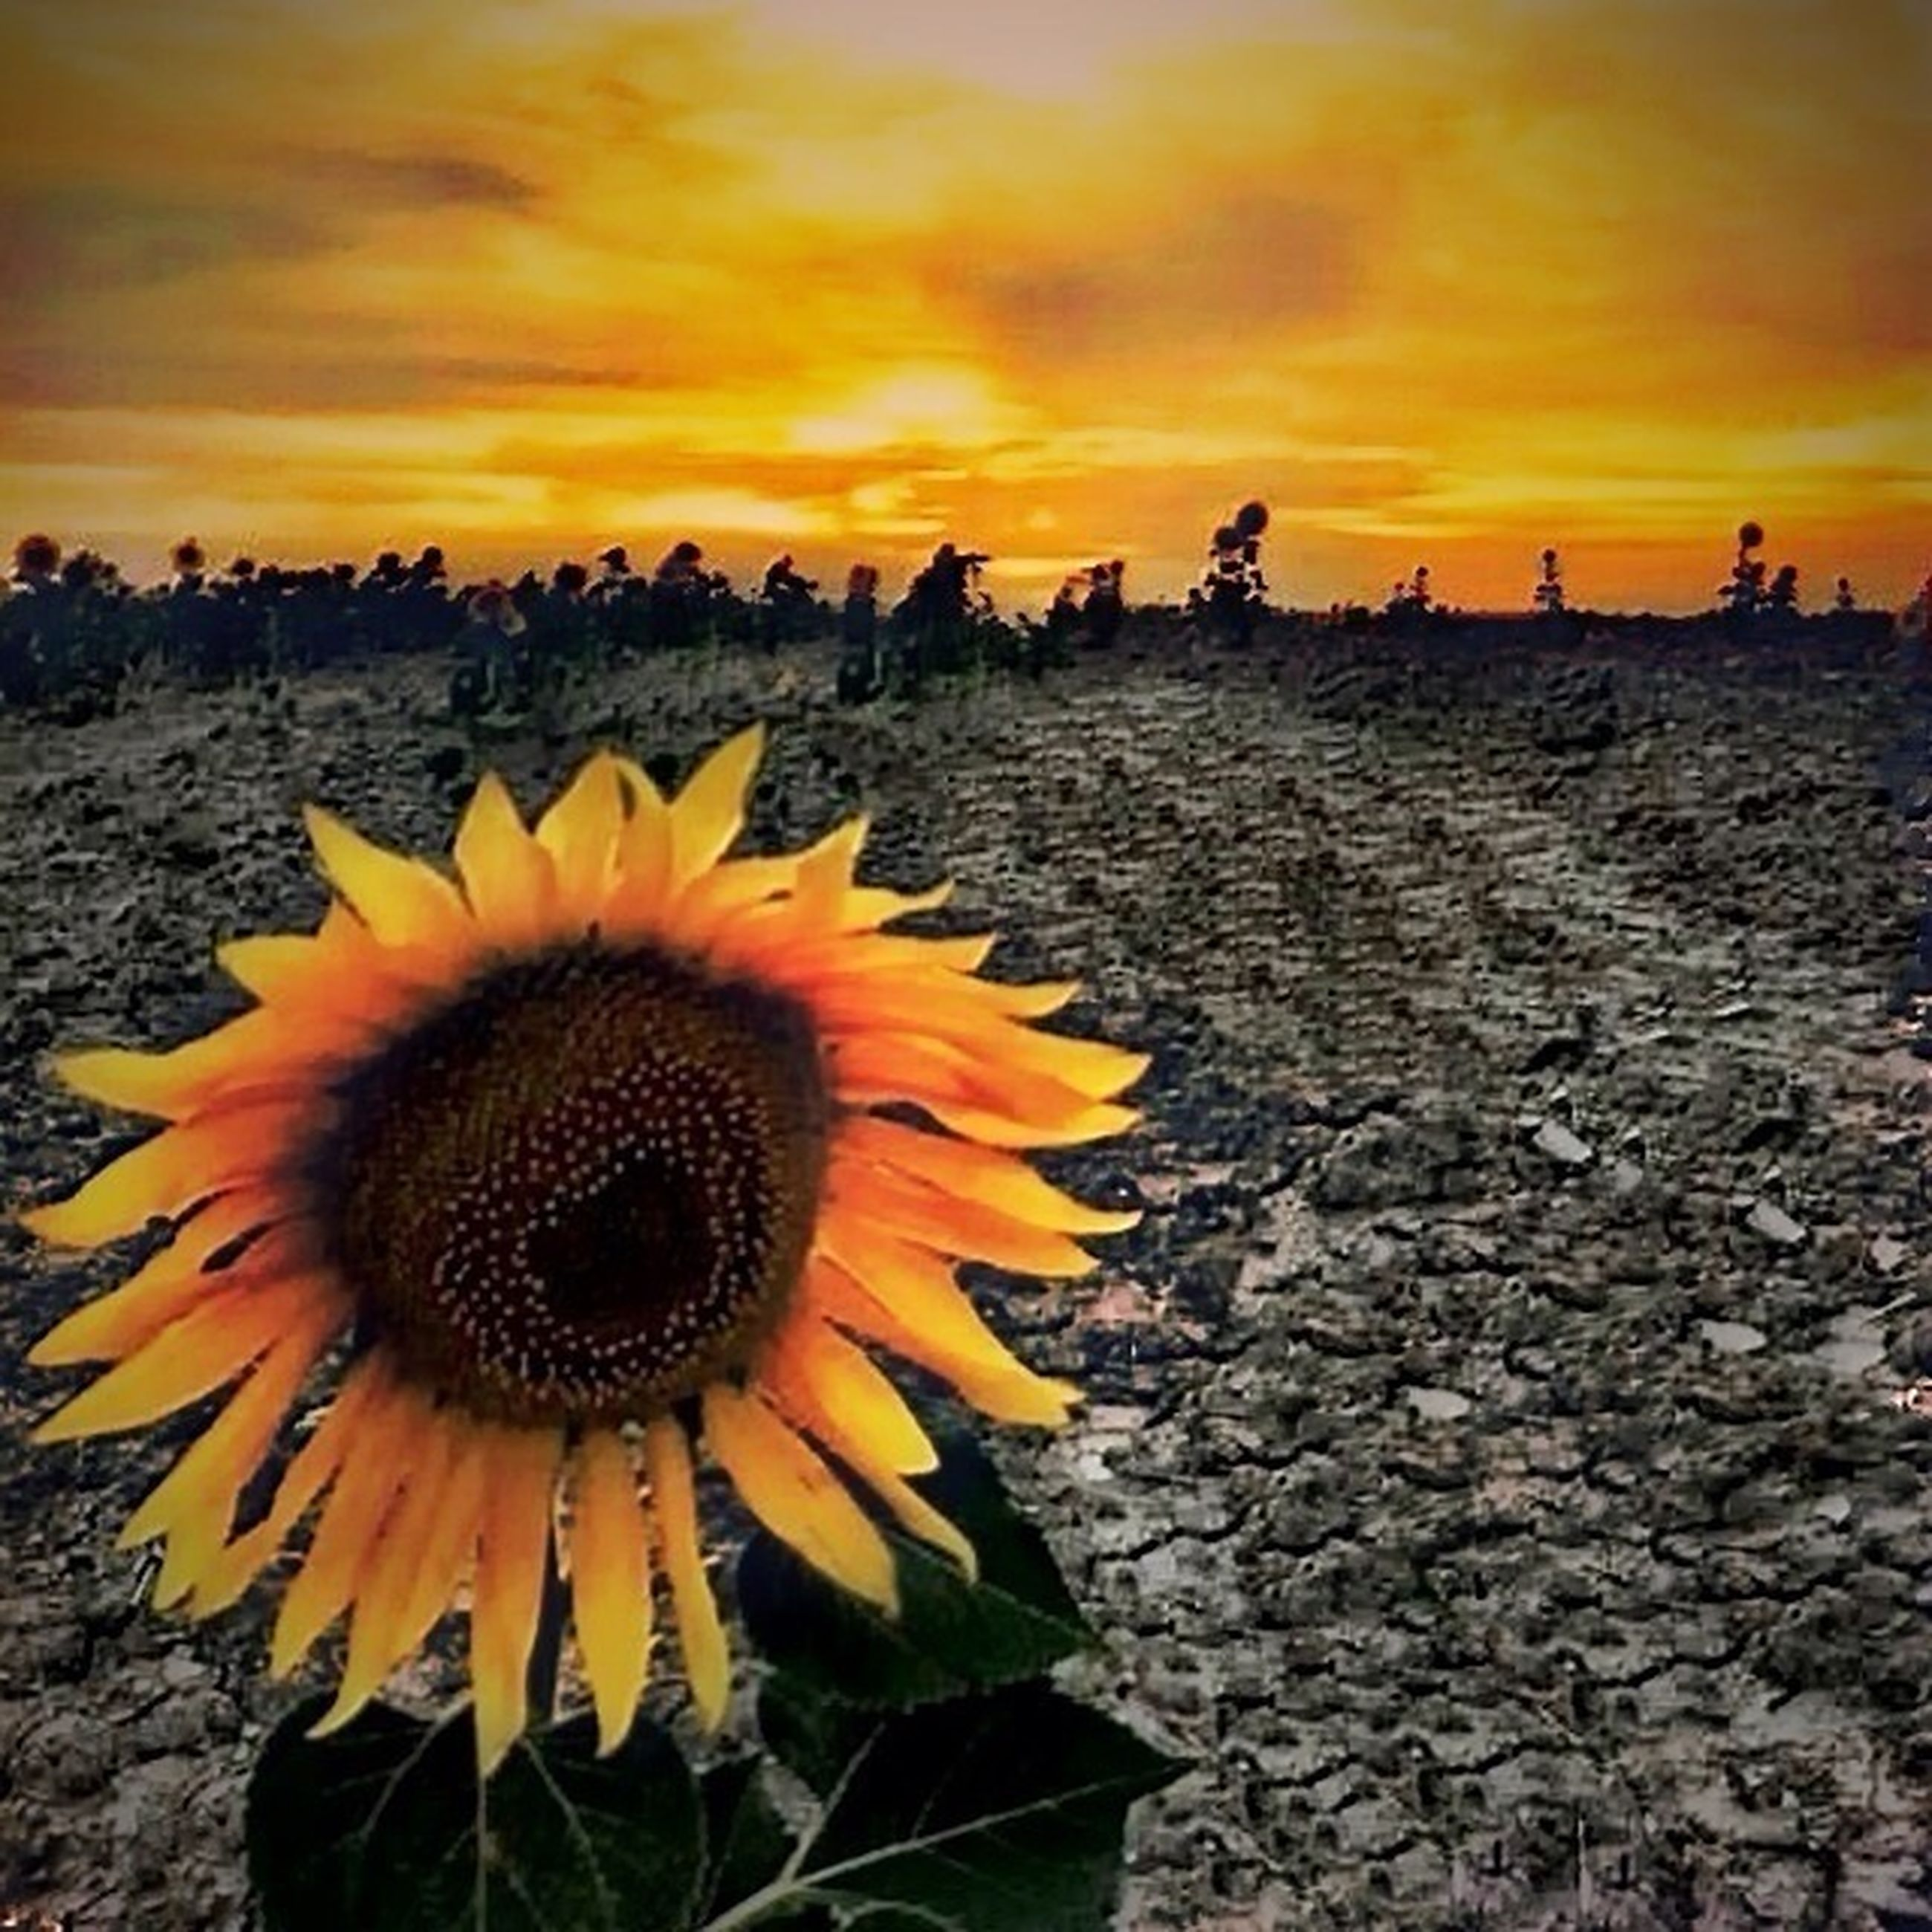 flower, yellow, sunflower, sky, fragility, beauty in nature, petal, flower head, sunset, freshness, growth, nature, cloud - sky, blooming, plant, field, orange color, pollen, tranquility, scenics